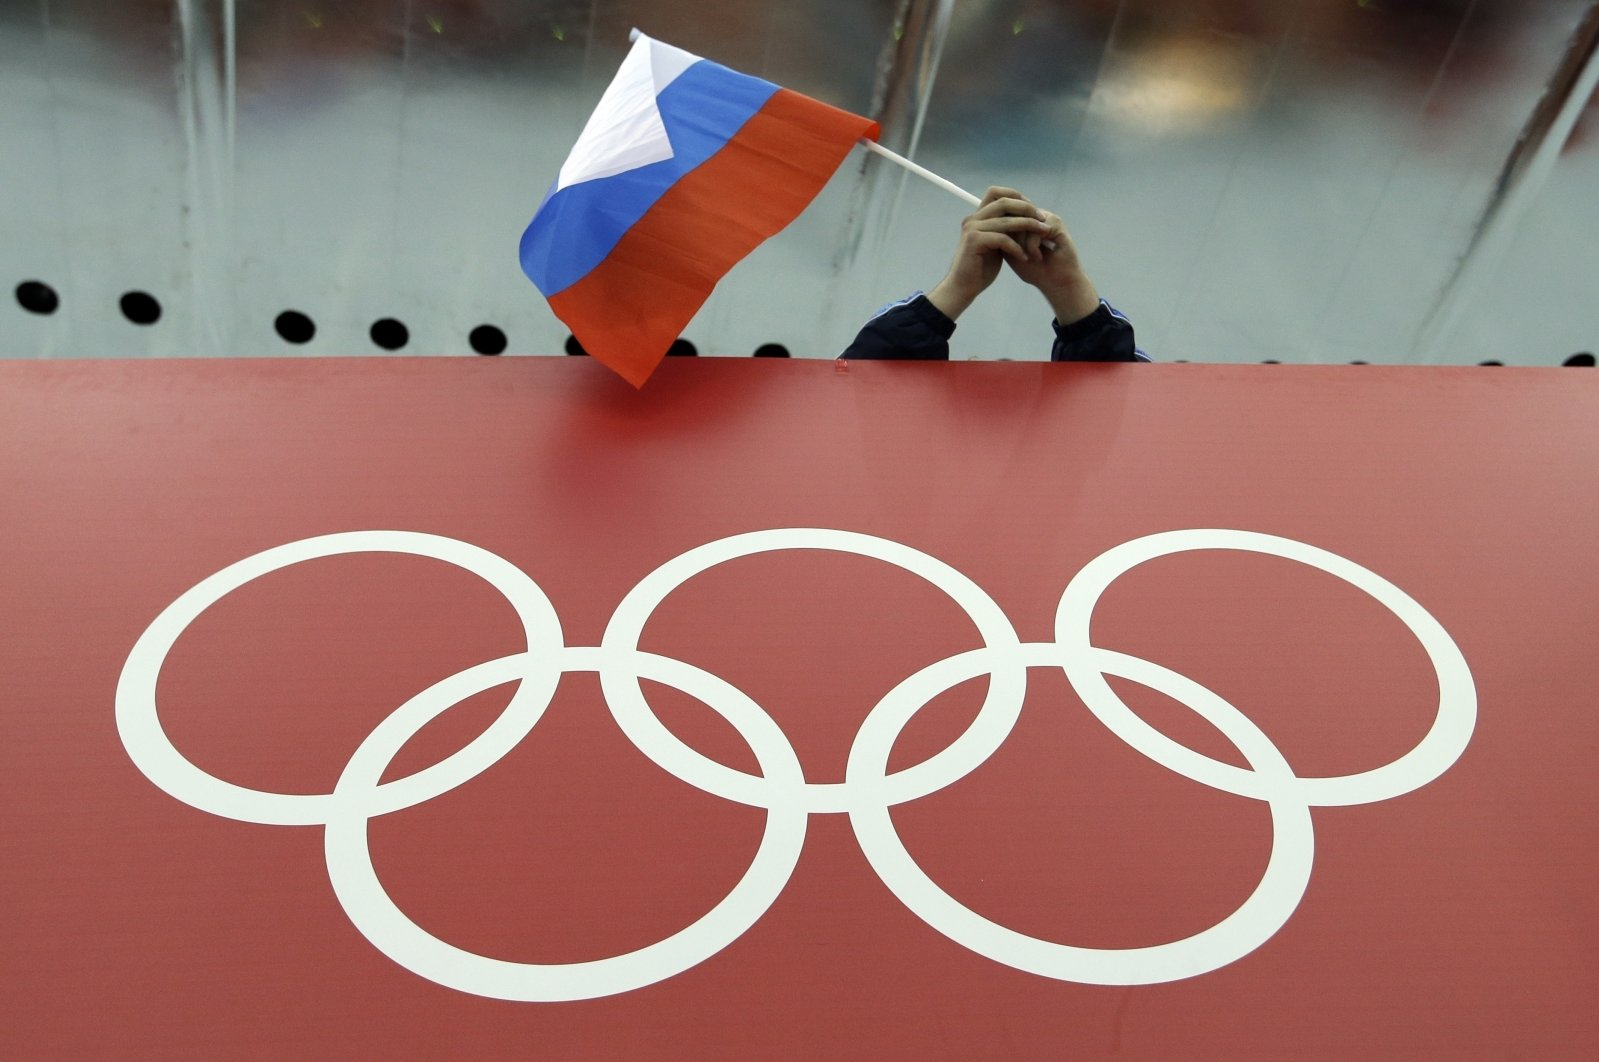 A Russian flag is held above the Olympic Rings at Adler Arena Skating Center during the Winter Olympics in Sochi, Russia on Feb. 18, 2014. (AP Photo)